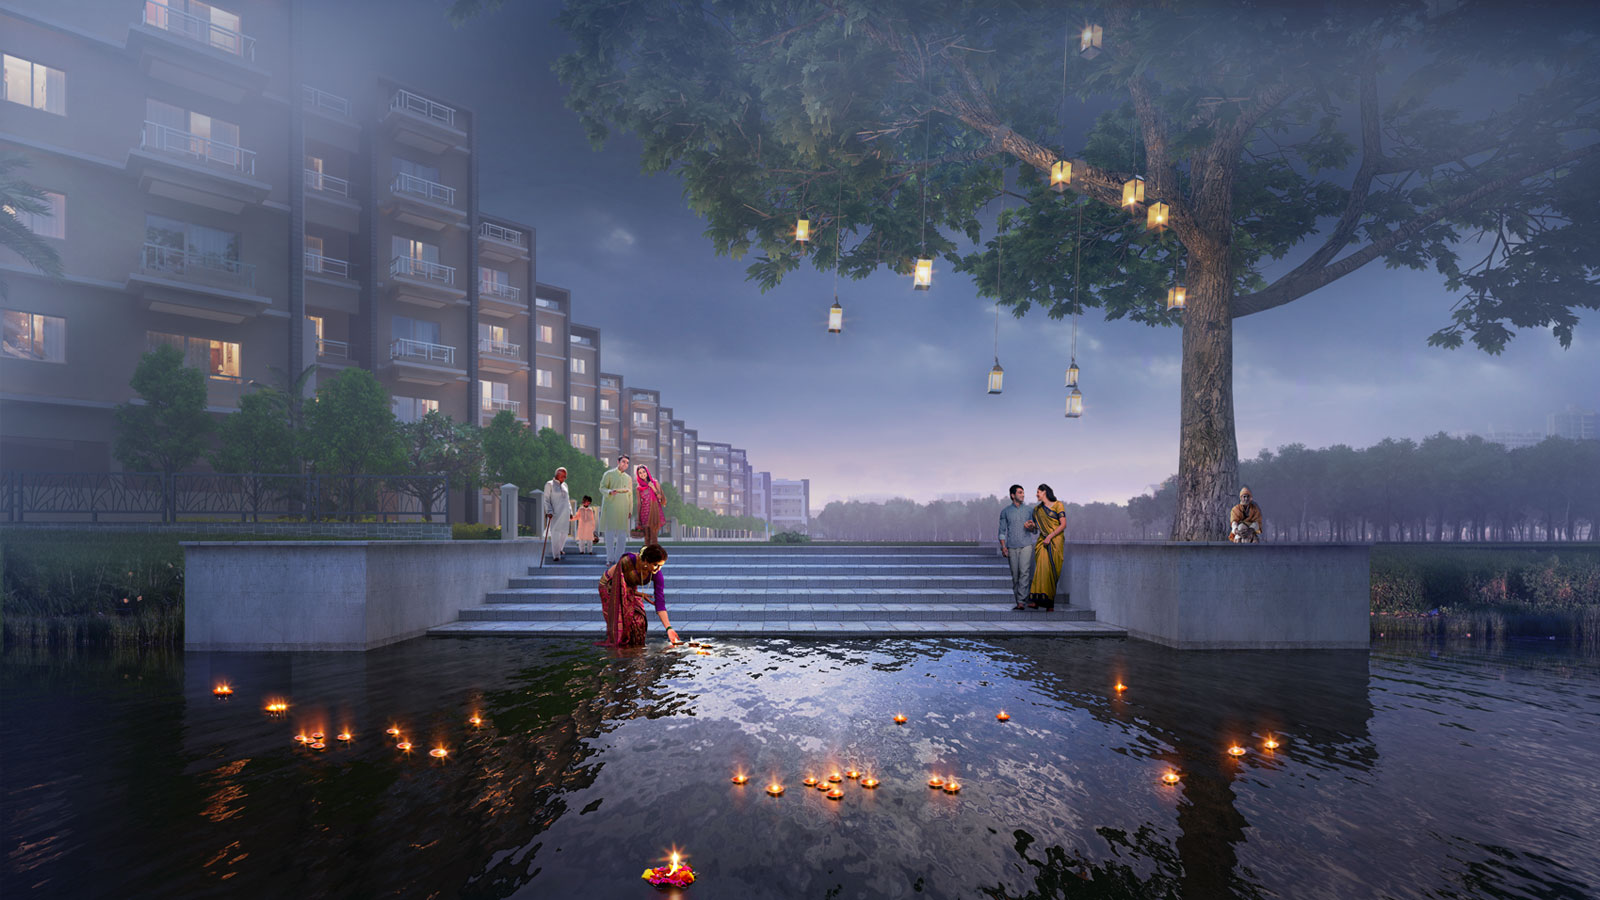 Rameswara Riverview Flats